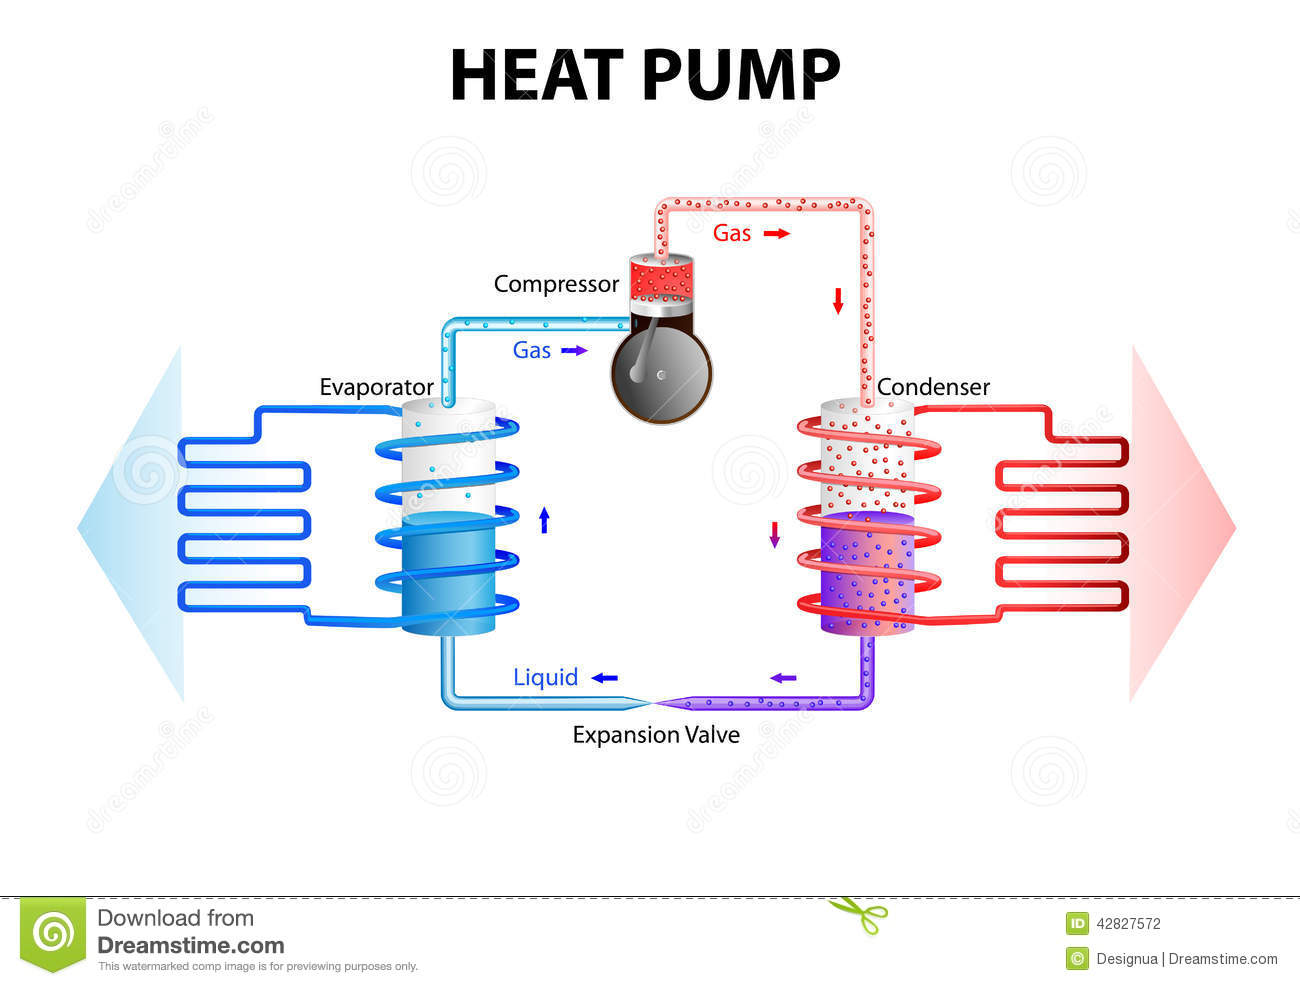 heat pump cooling system works extracting energy stored ground water converts building heating pumps 42827572 how a air conditioner works grihon com ac, coolers & devices how does air conditioning work diagram at highcare.asia